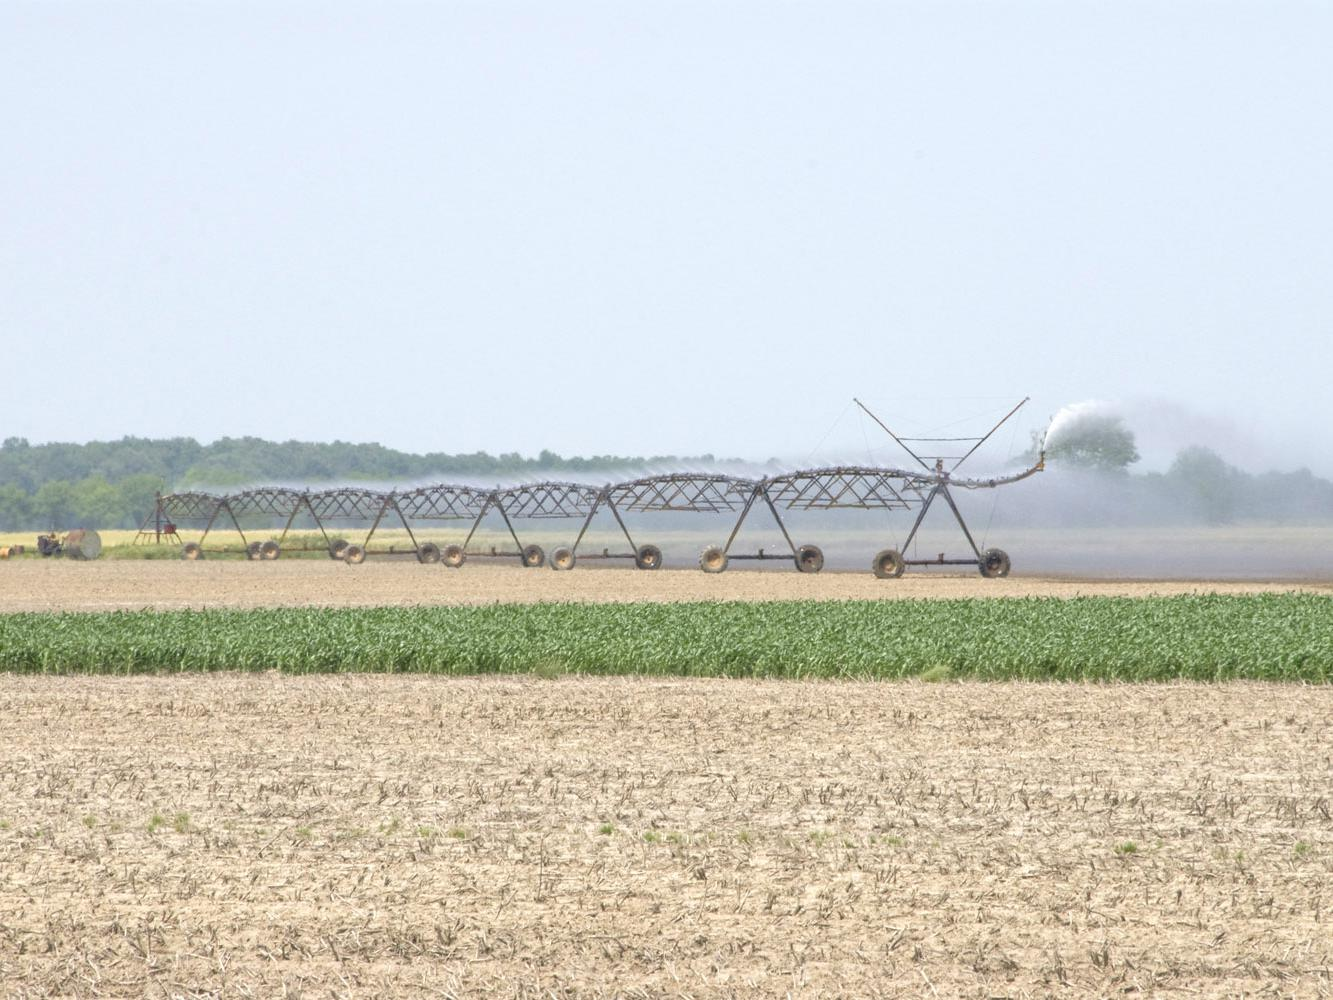 Recent high temperatures and a lack of rain have been harder on crops without irrigation than those with it. Many Mississippi farms are watered through pivot irrigation systems. (Photo by MSU Ag Communications/Marco Nicovich)